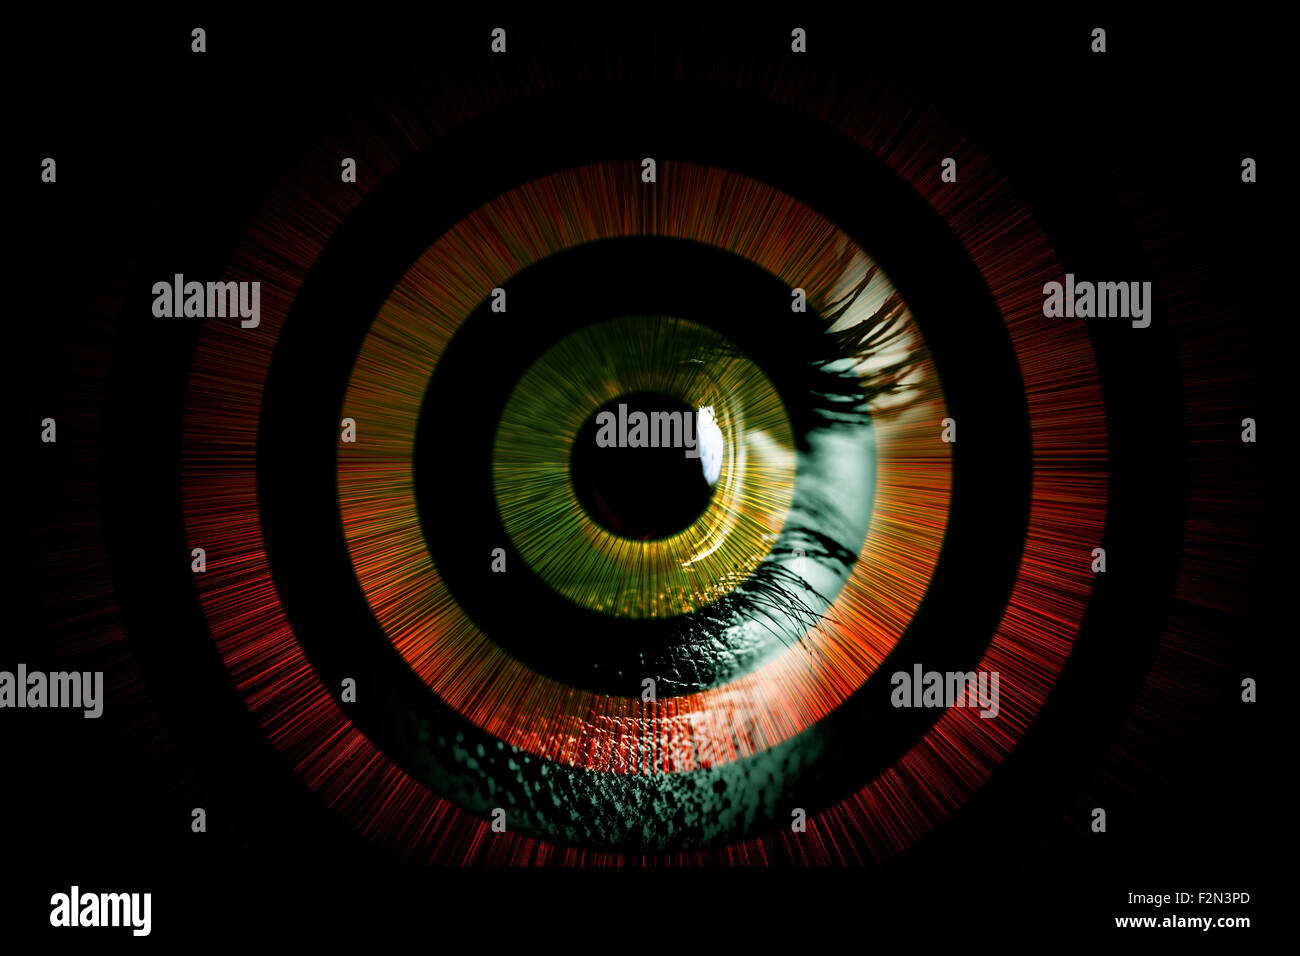 Les droits de l'oeil - abstract concept vision Photo Stock